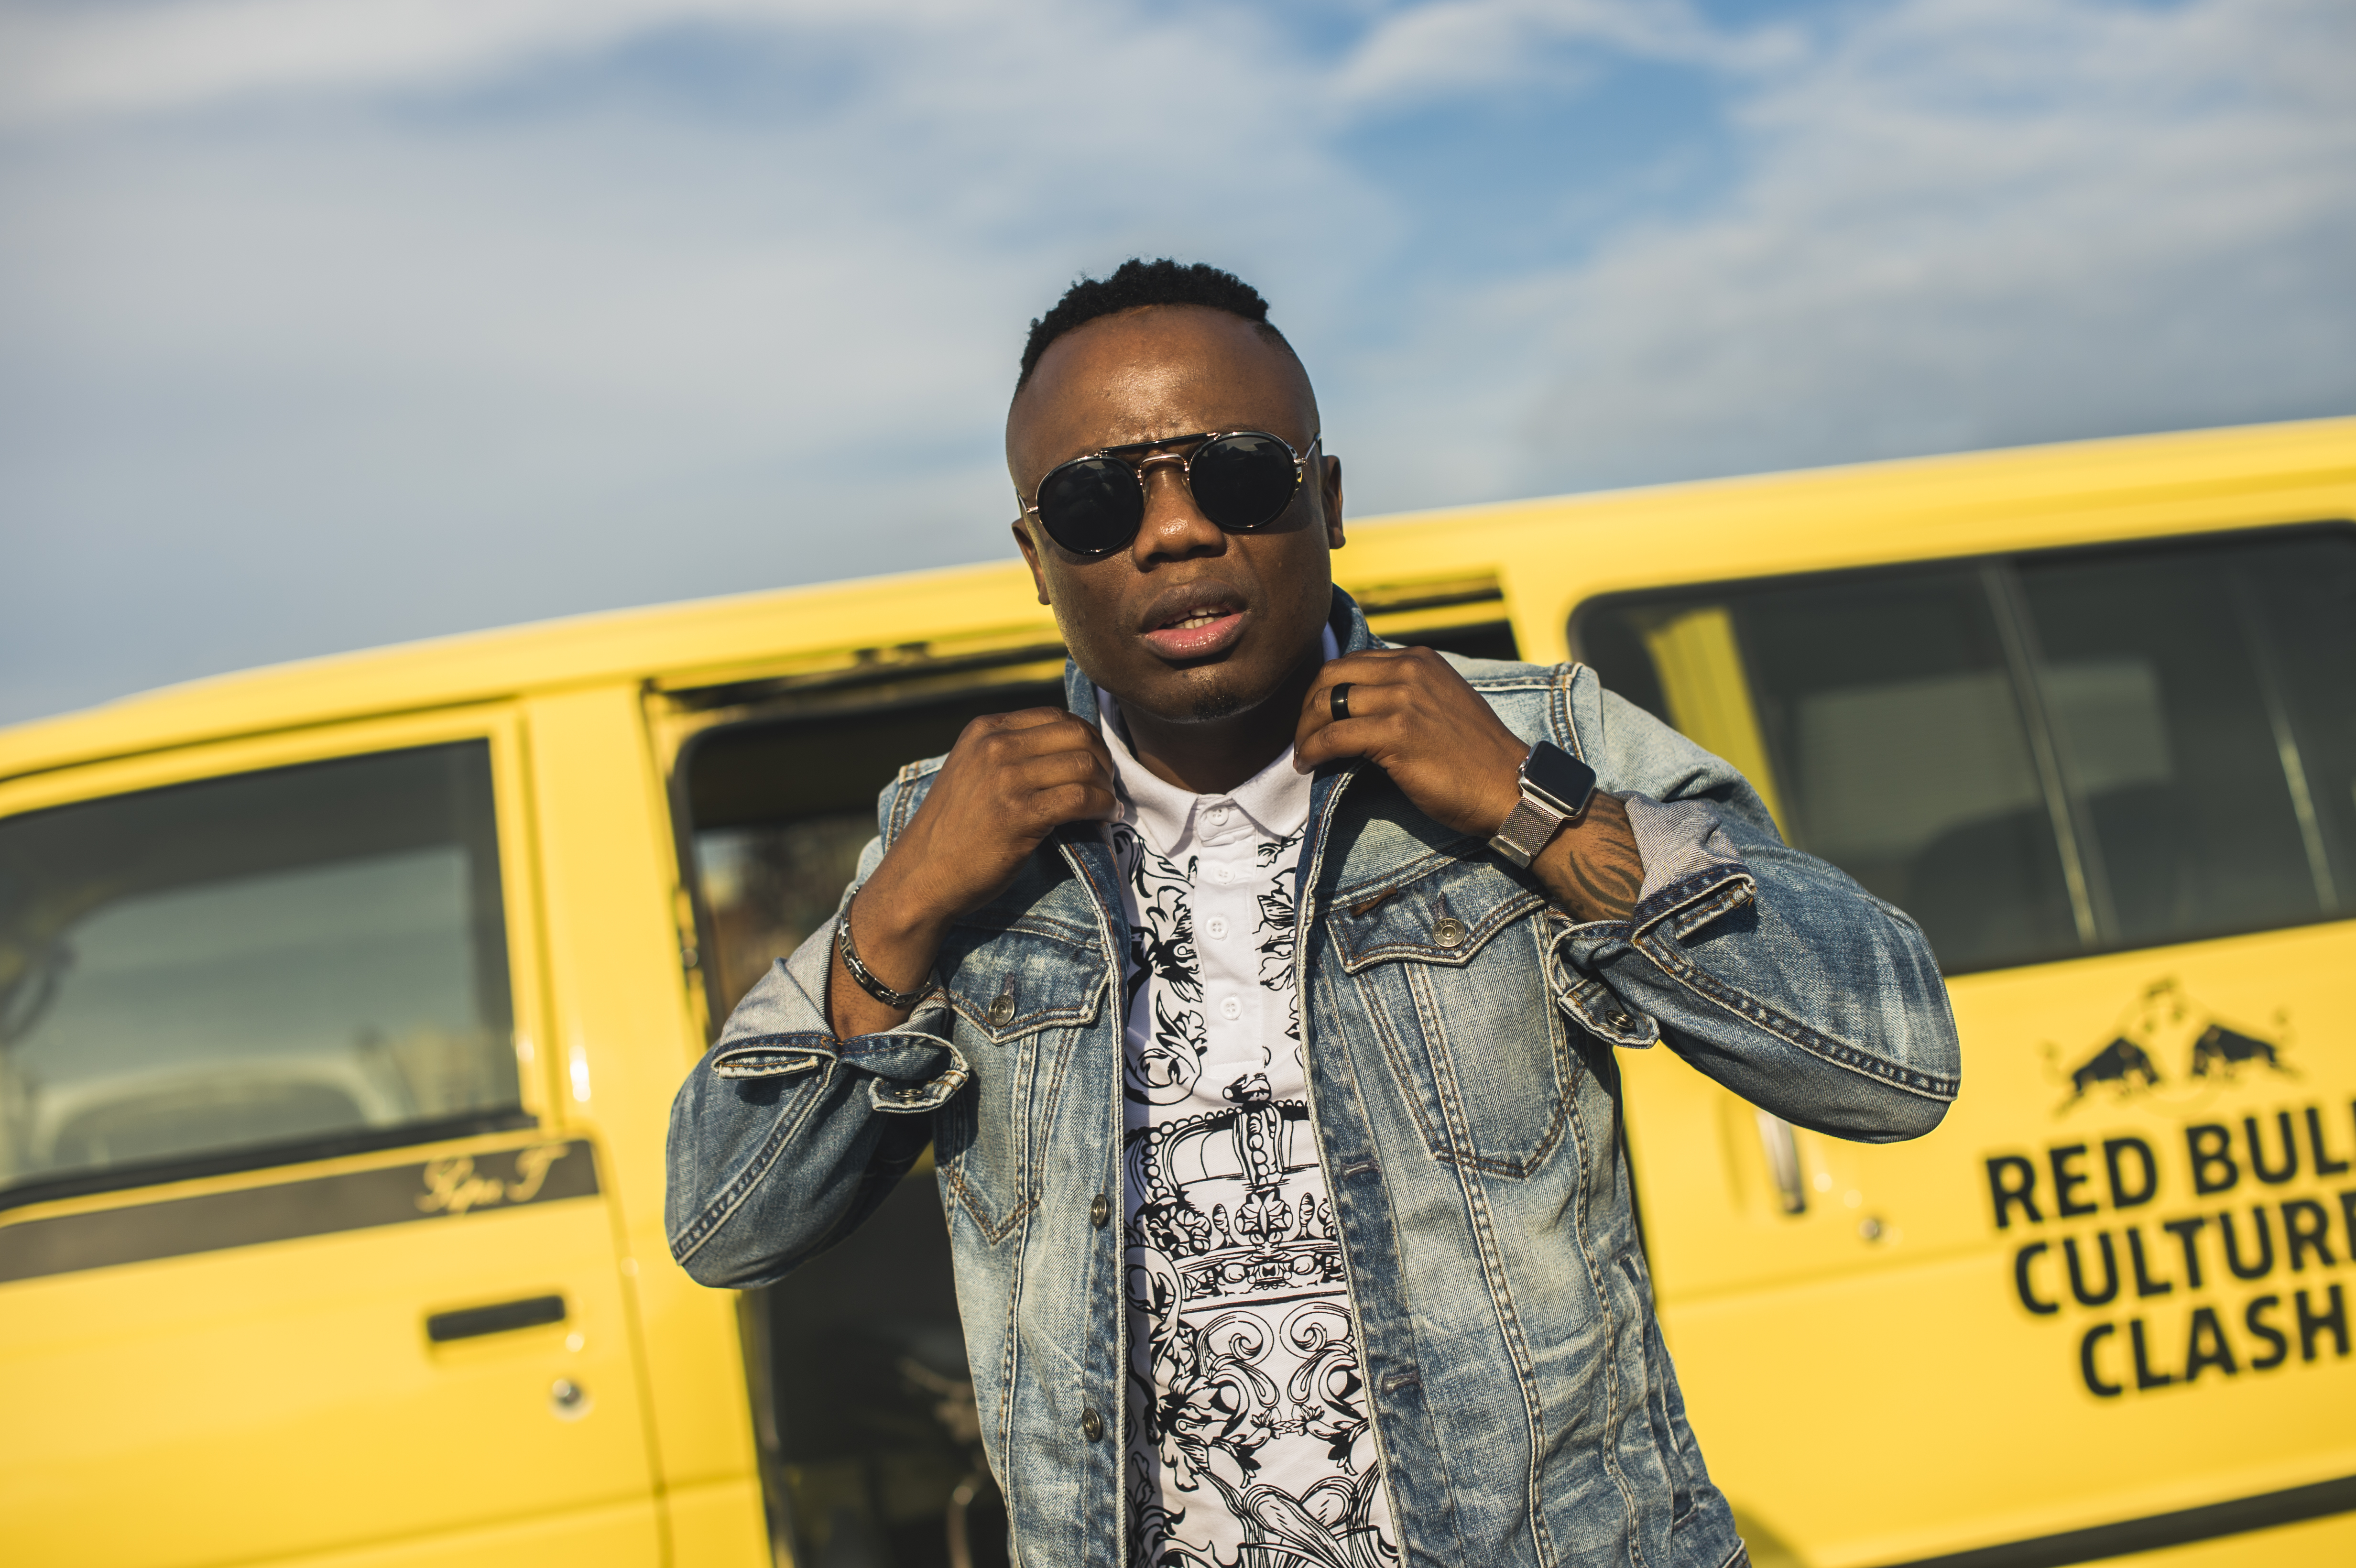 DJ Tira reveals he wants to launch a fresh talent's career soon